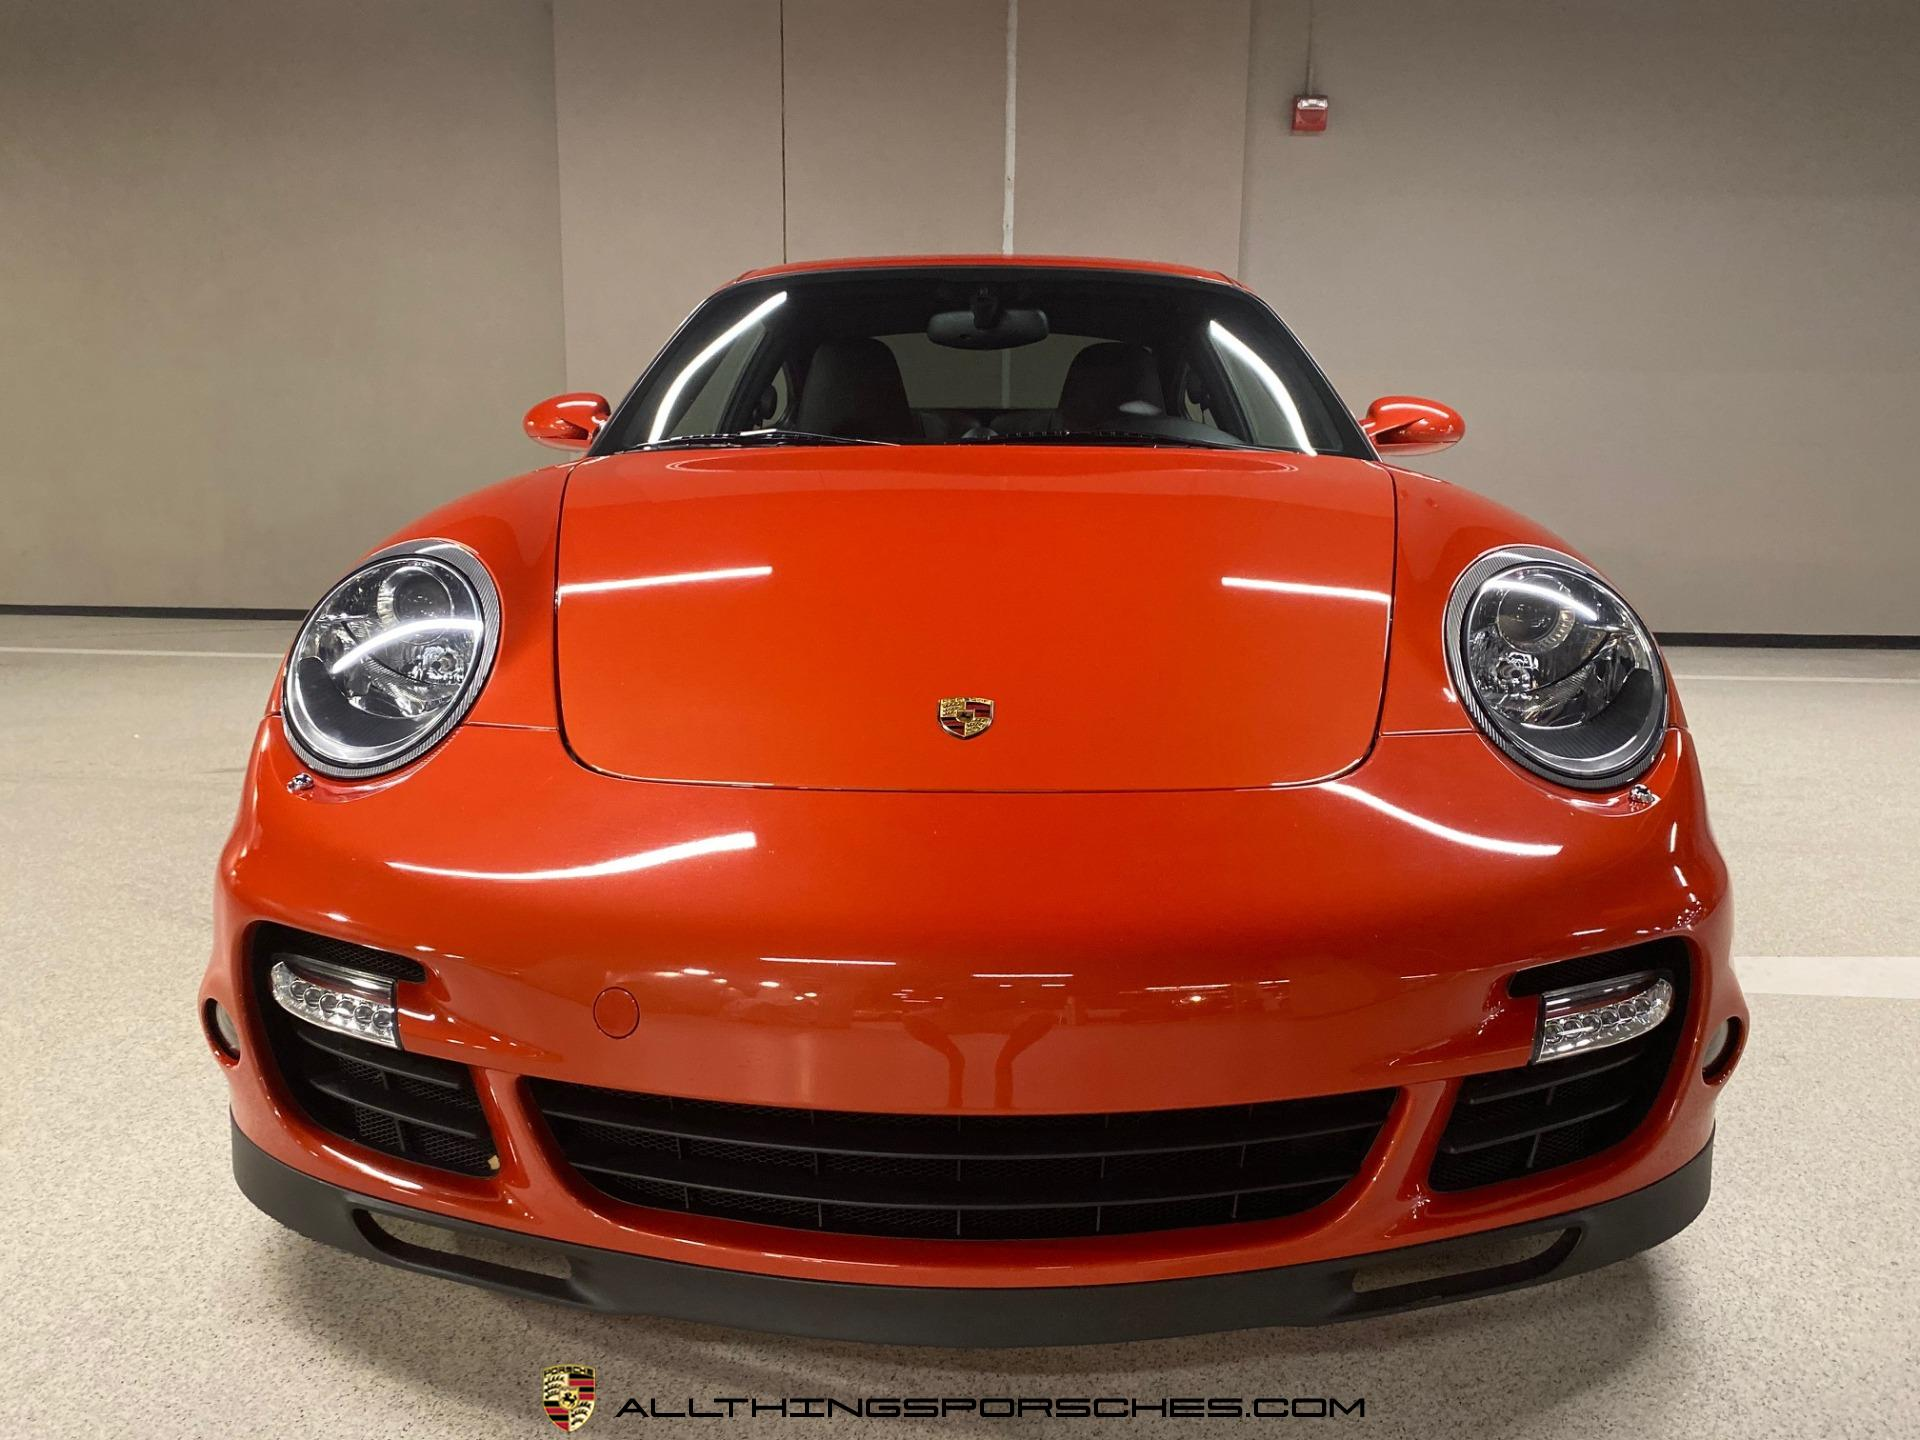 Used-2007-Porsche-911-Turbo-Paint-to-Sample-Manual-Trans